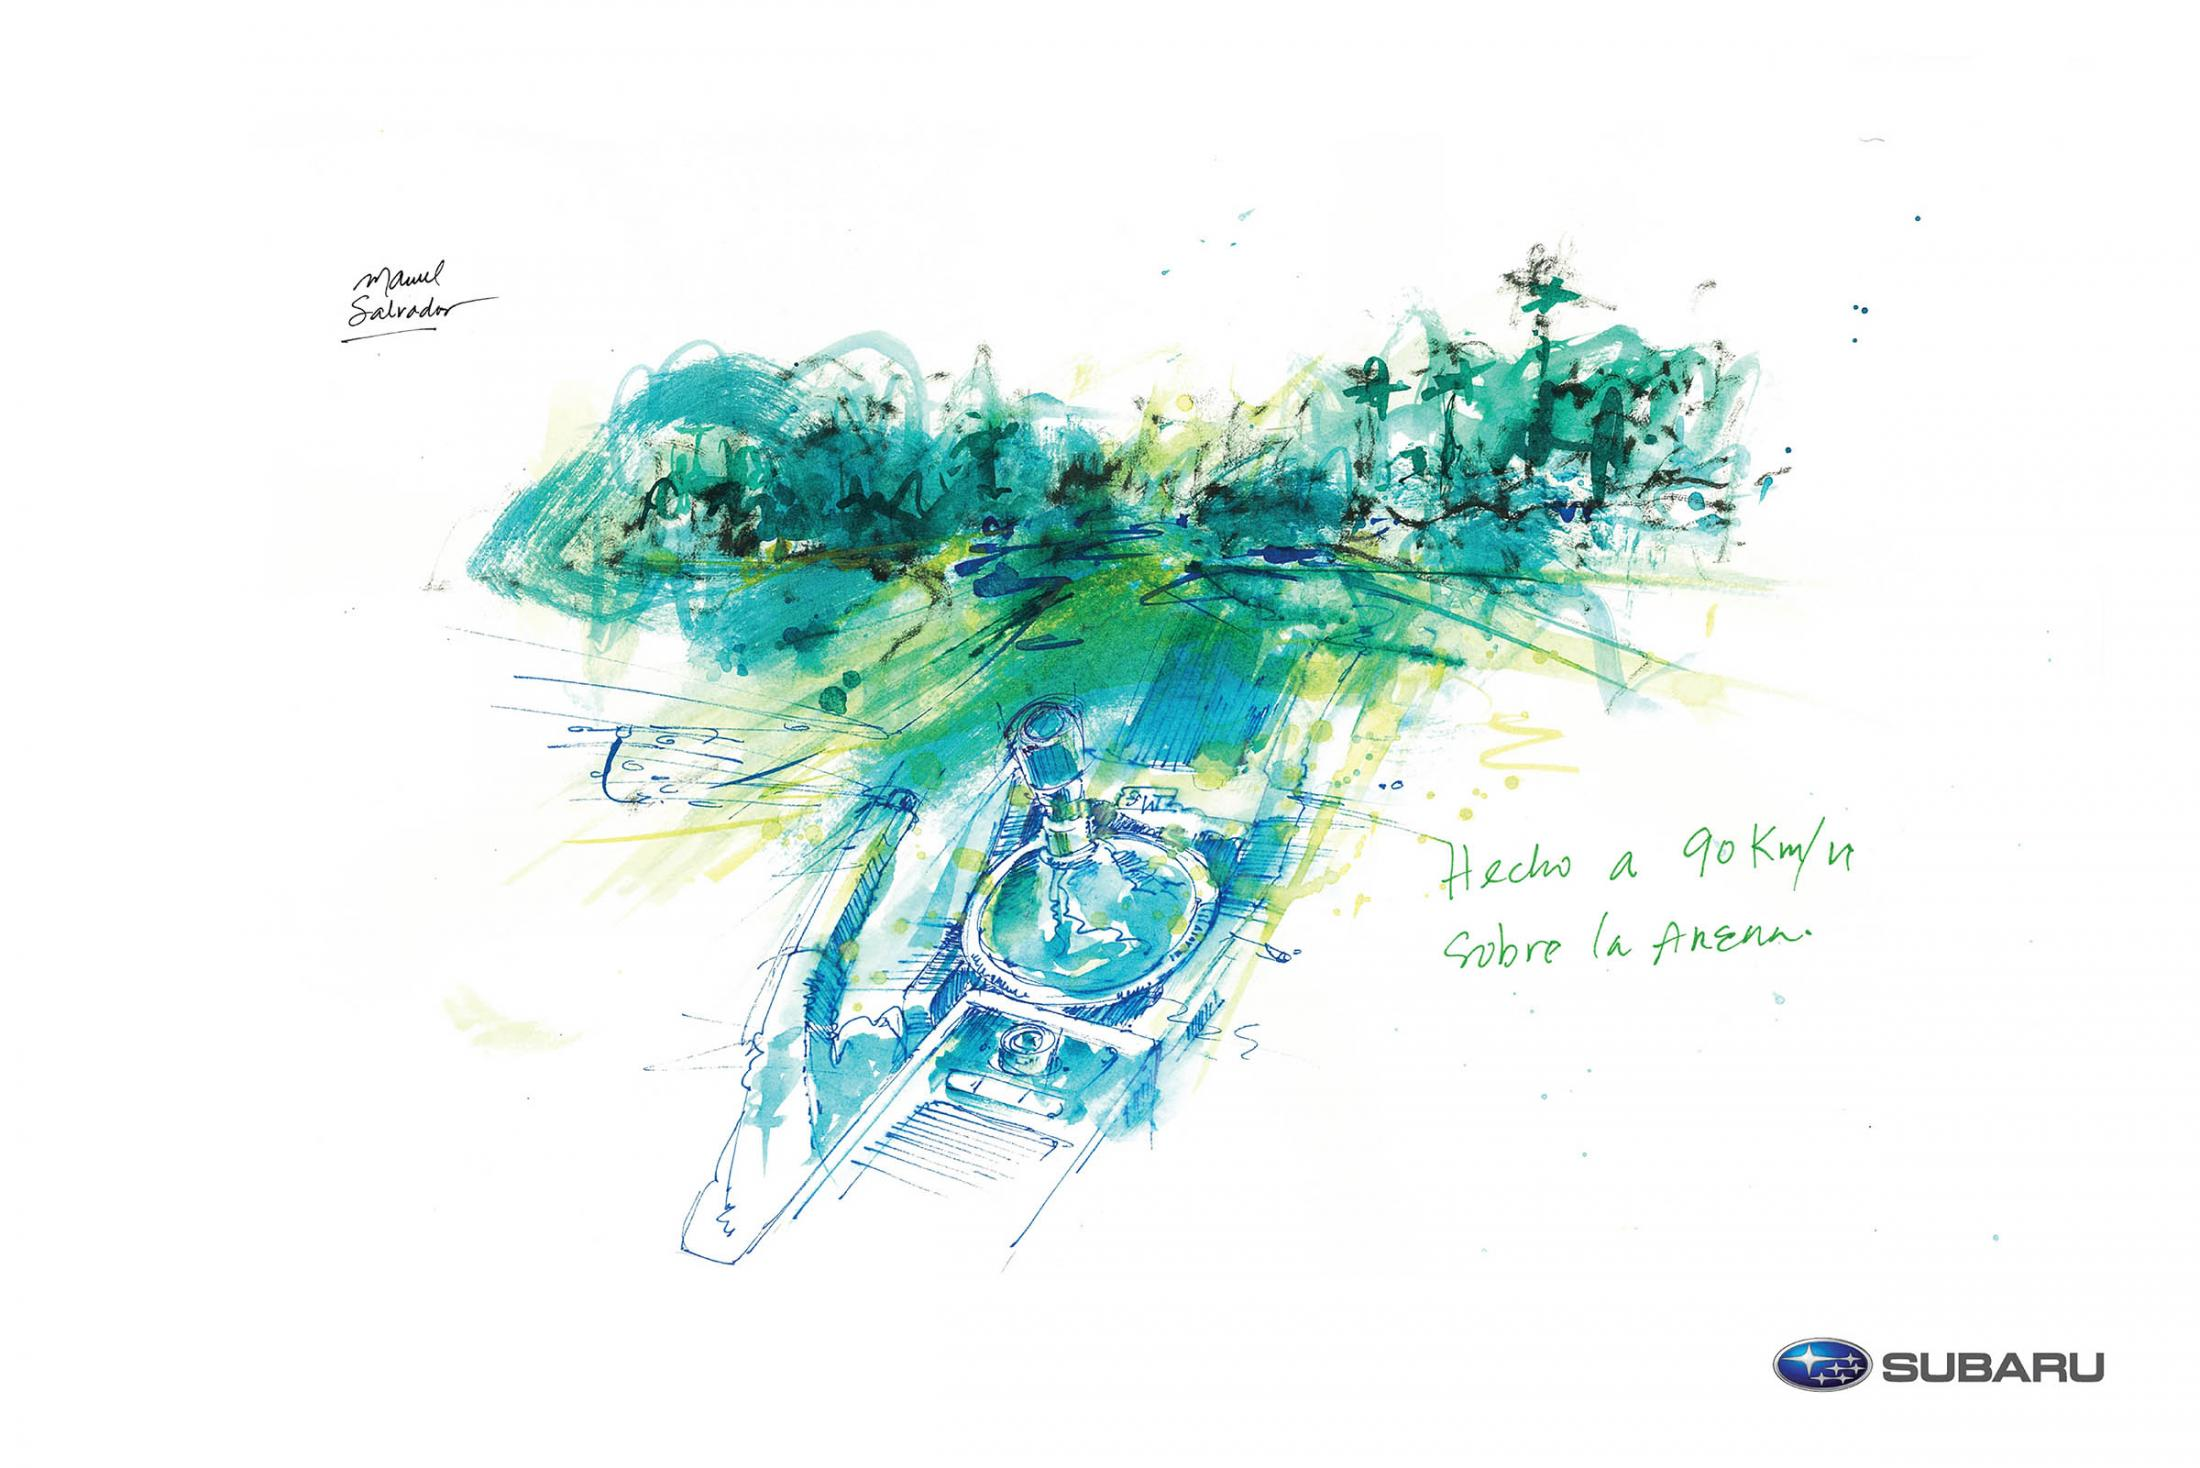 Subaru Experiential Ad - The Art Of Driving